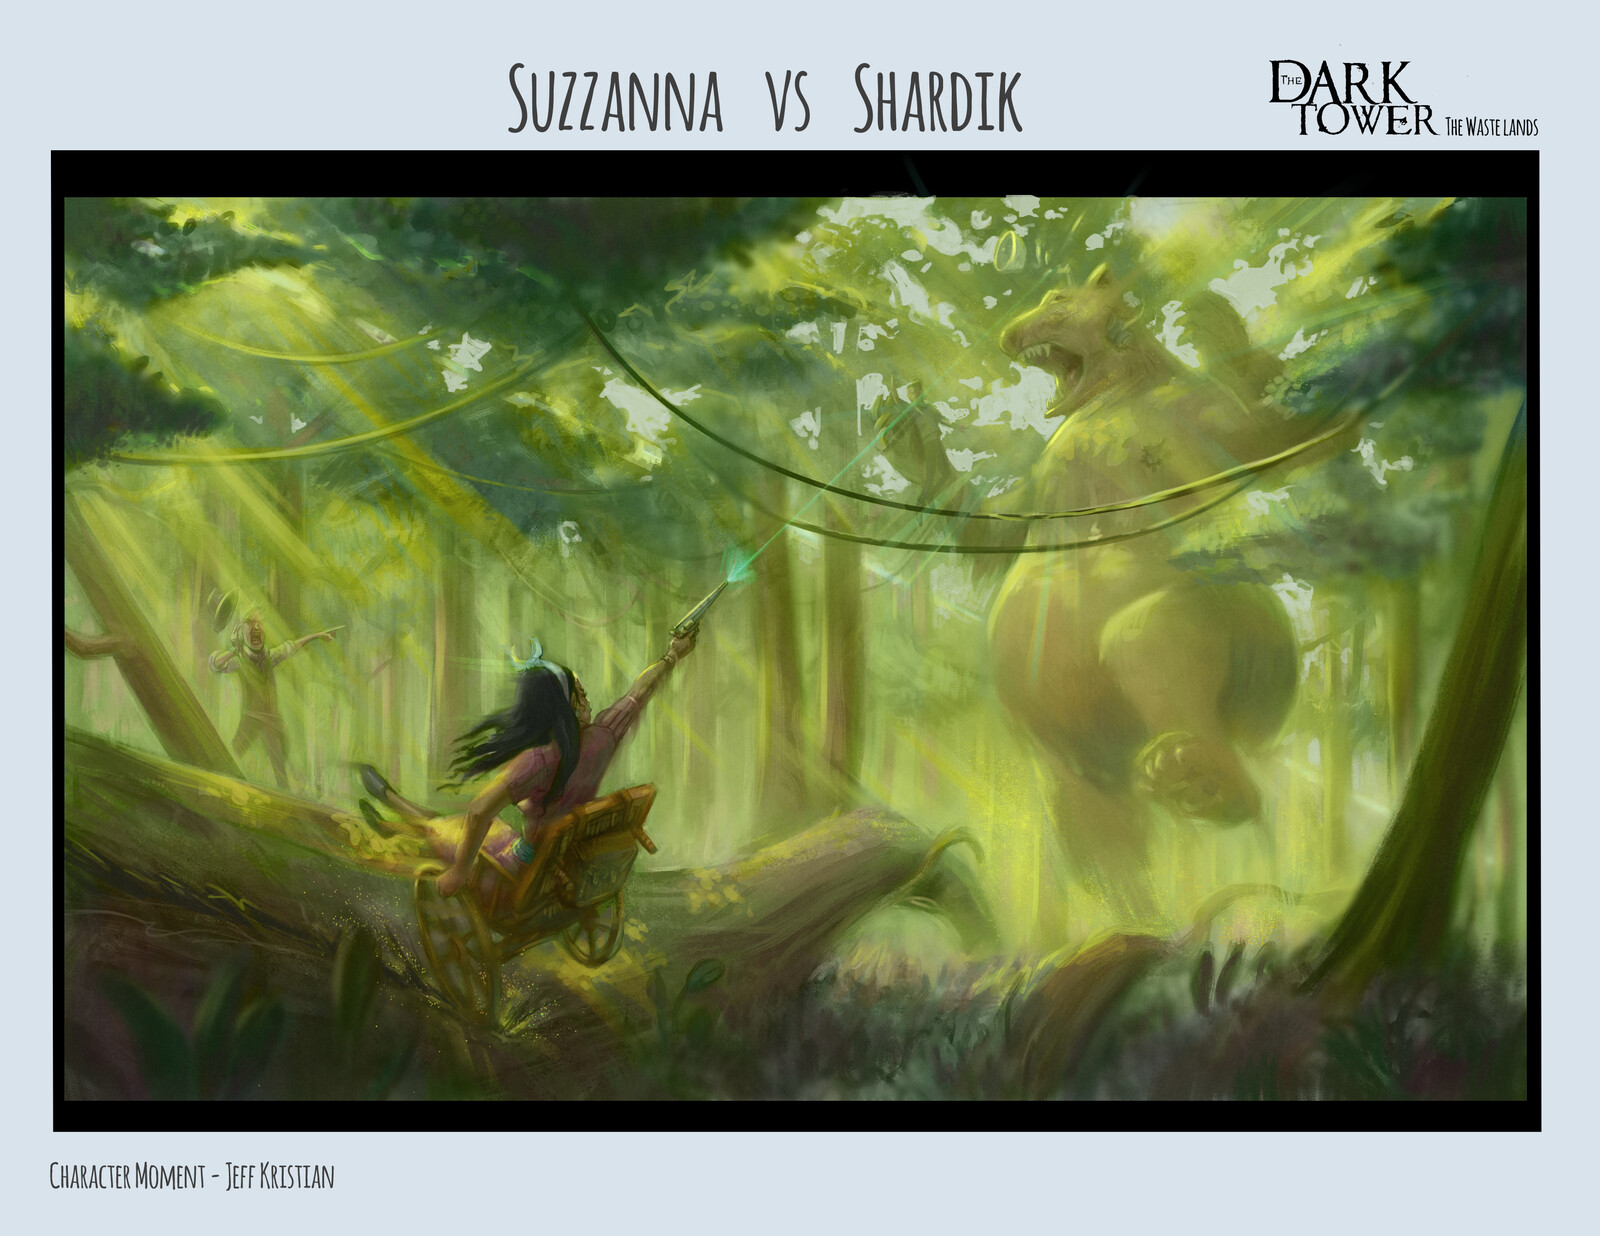 Suzzannah vs Shardik